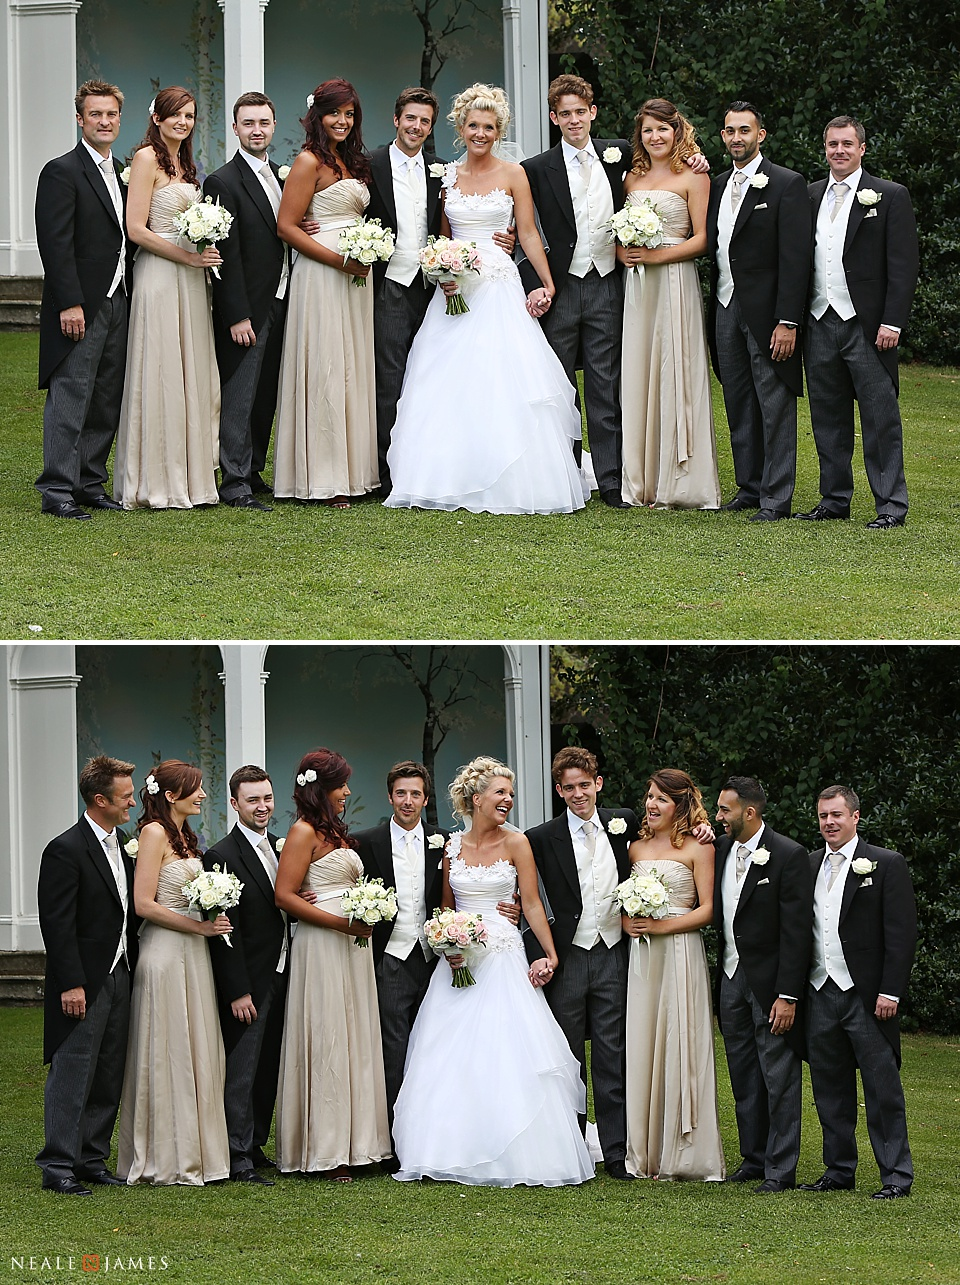 Colour image of bridal party posing together at Wasing Park in Berkshire